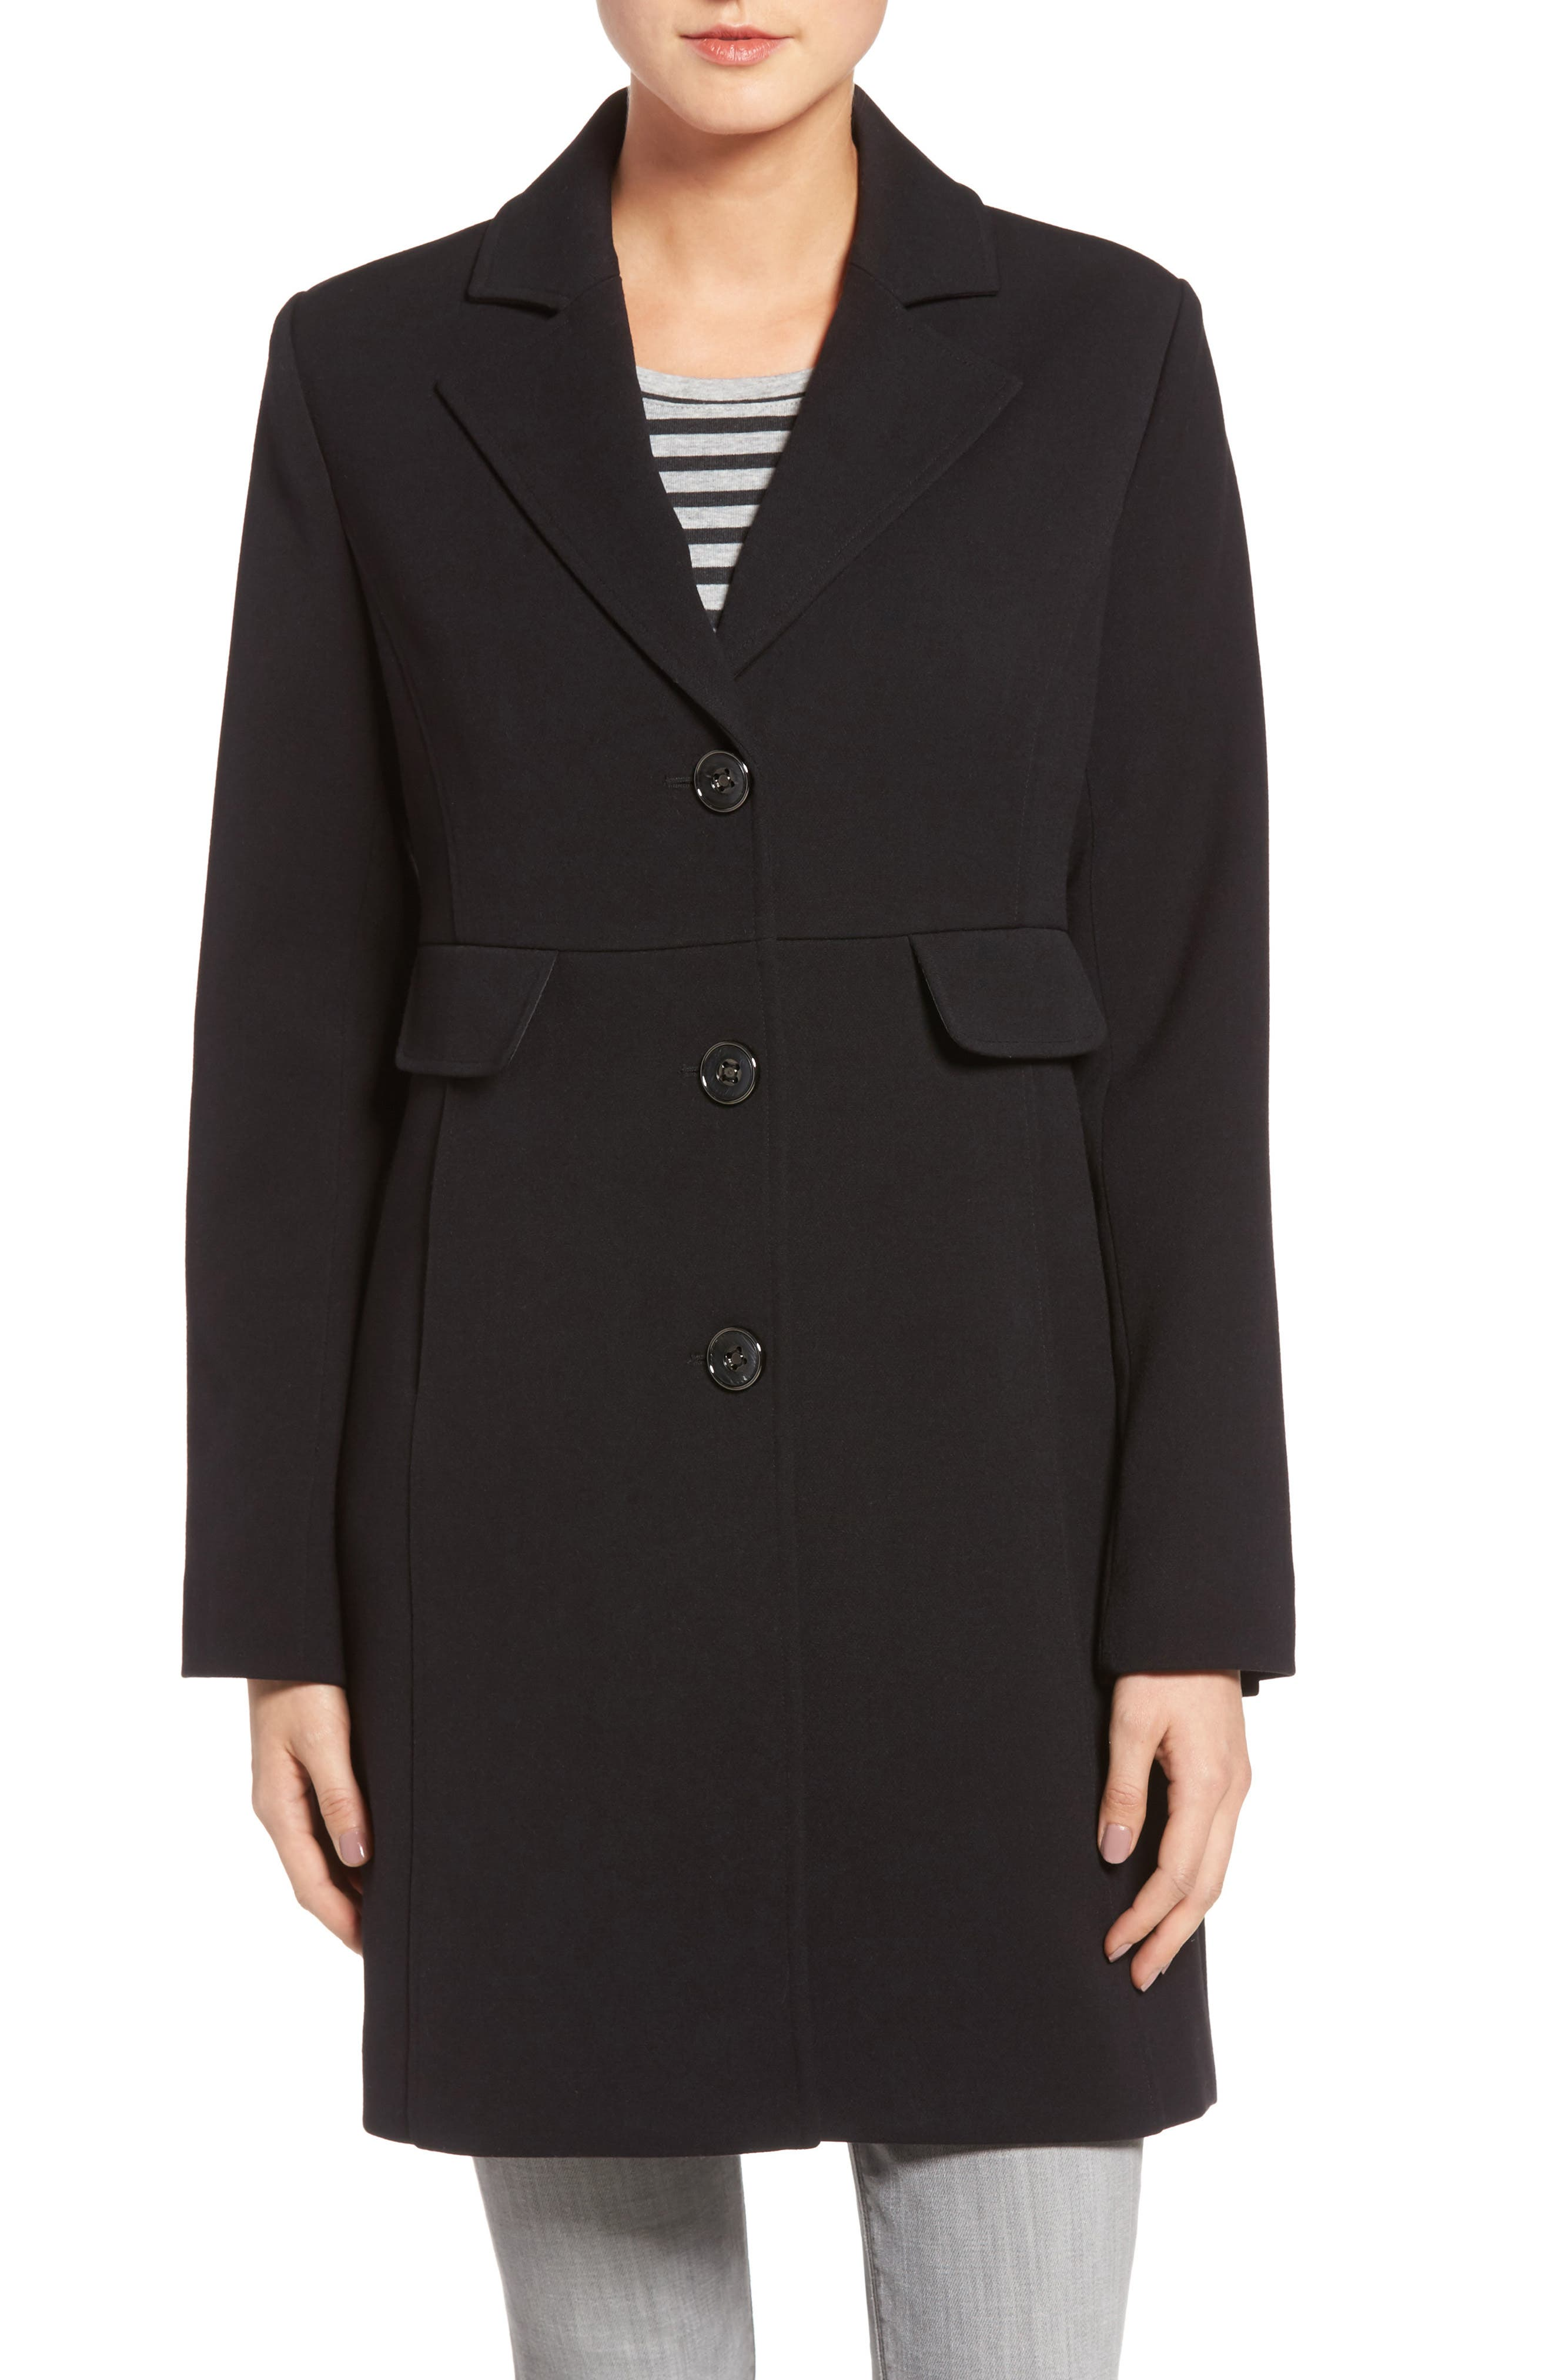 KENNETH COLE NEW YORK Kenneth Cole A-Line Ponte Coat